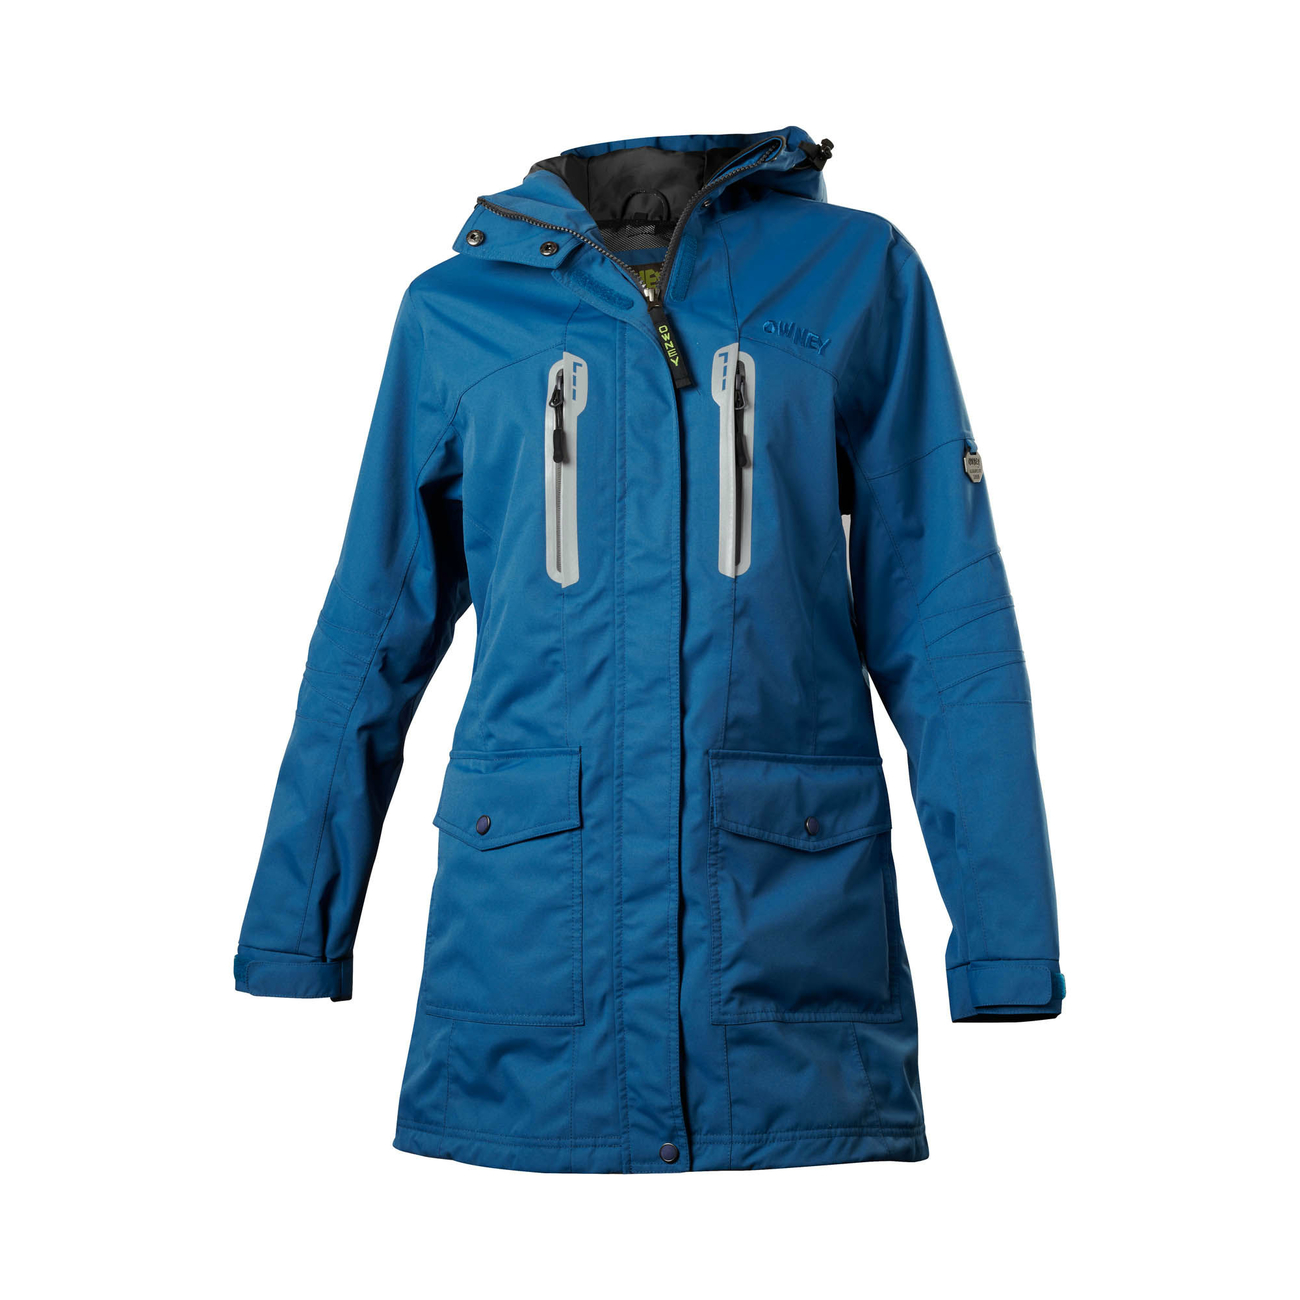 Owney Outdoor Damenparka Arnauti, Bild 11